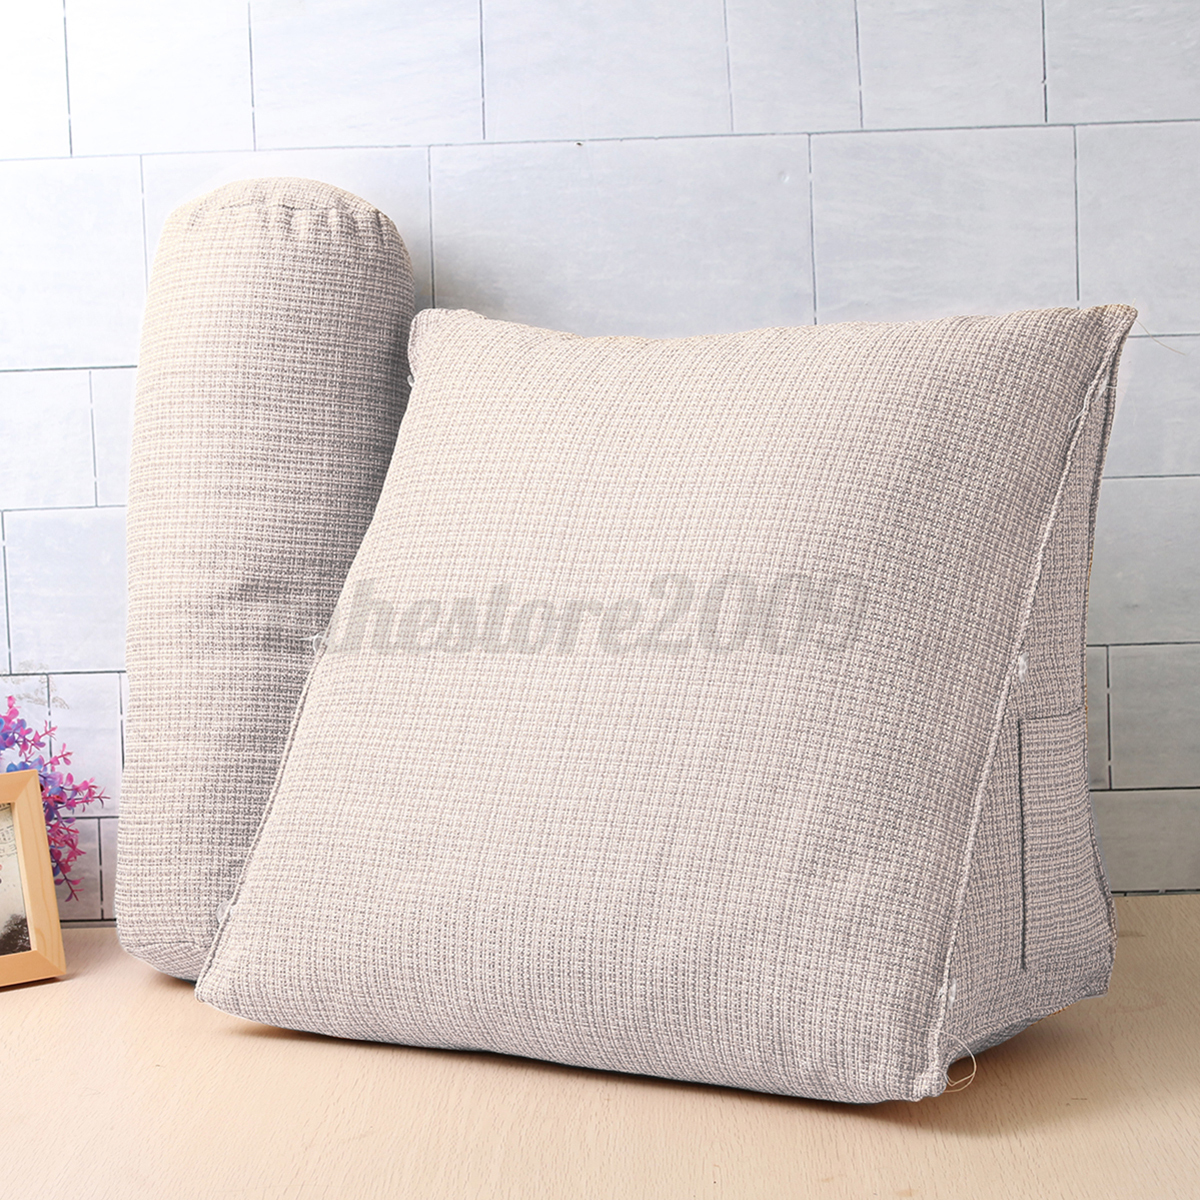 Bed Chair Pillow Big Adjustable Sofa Bed Chair Office Rest Neck Support